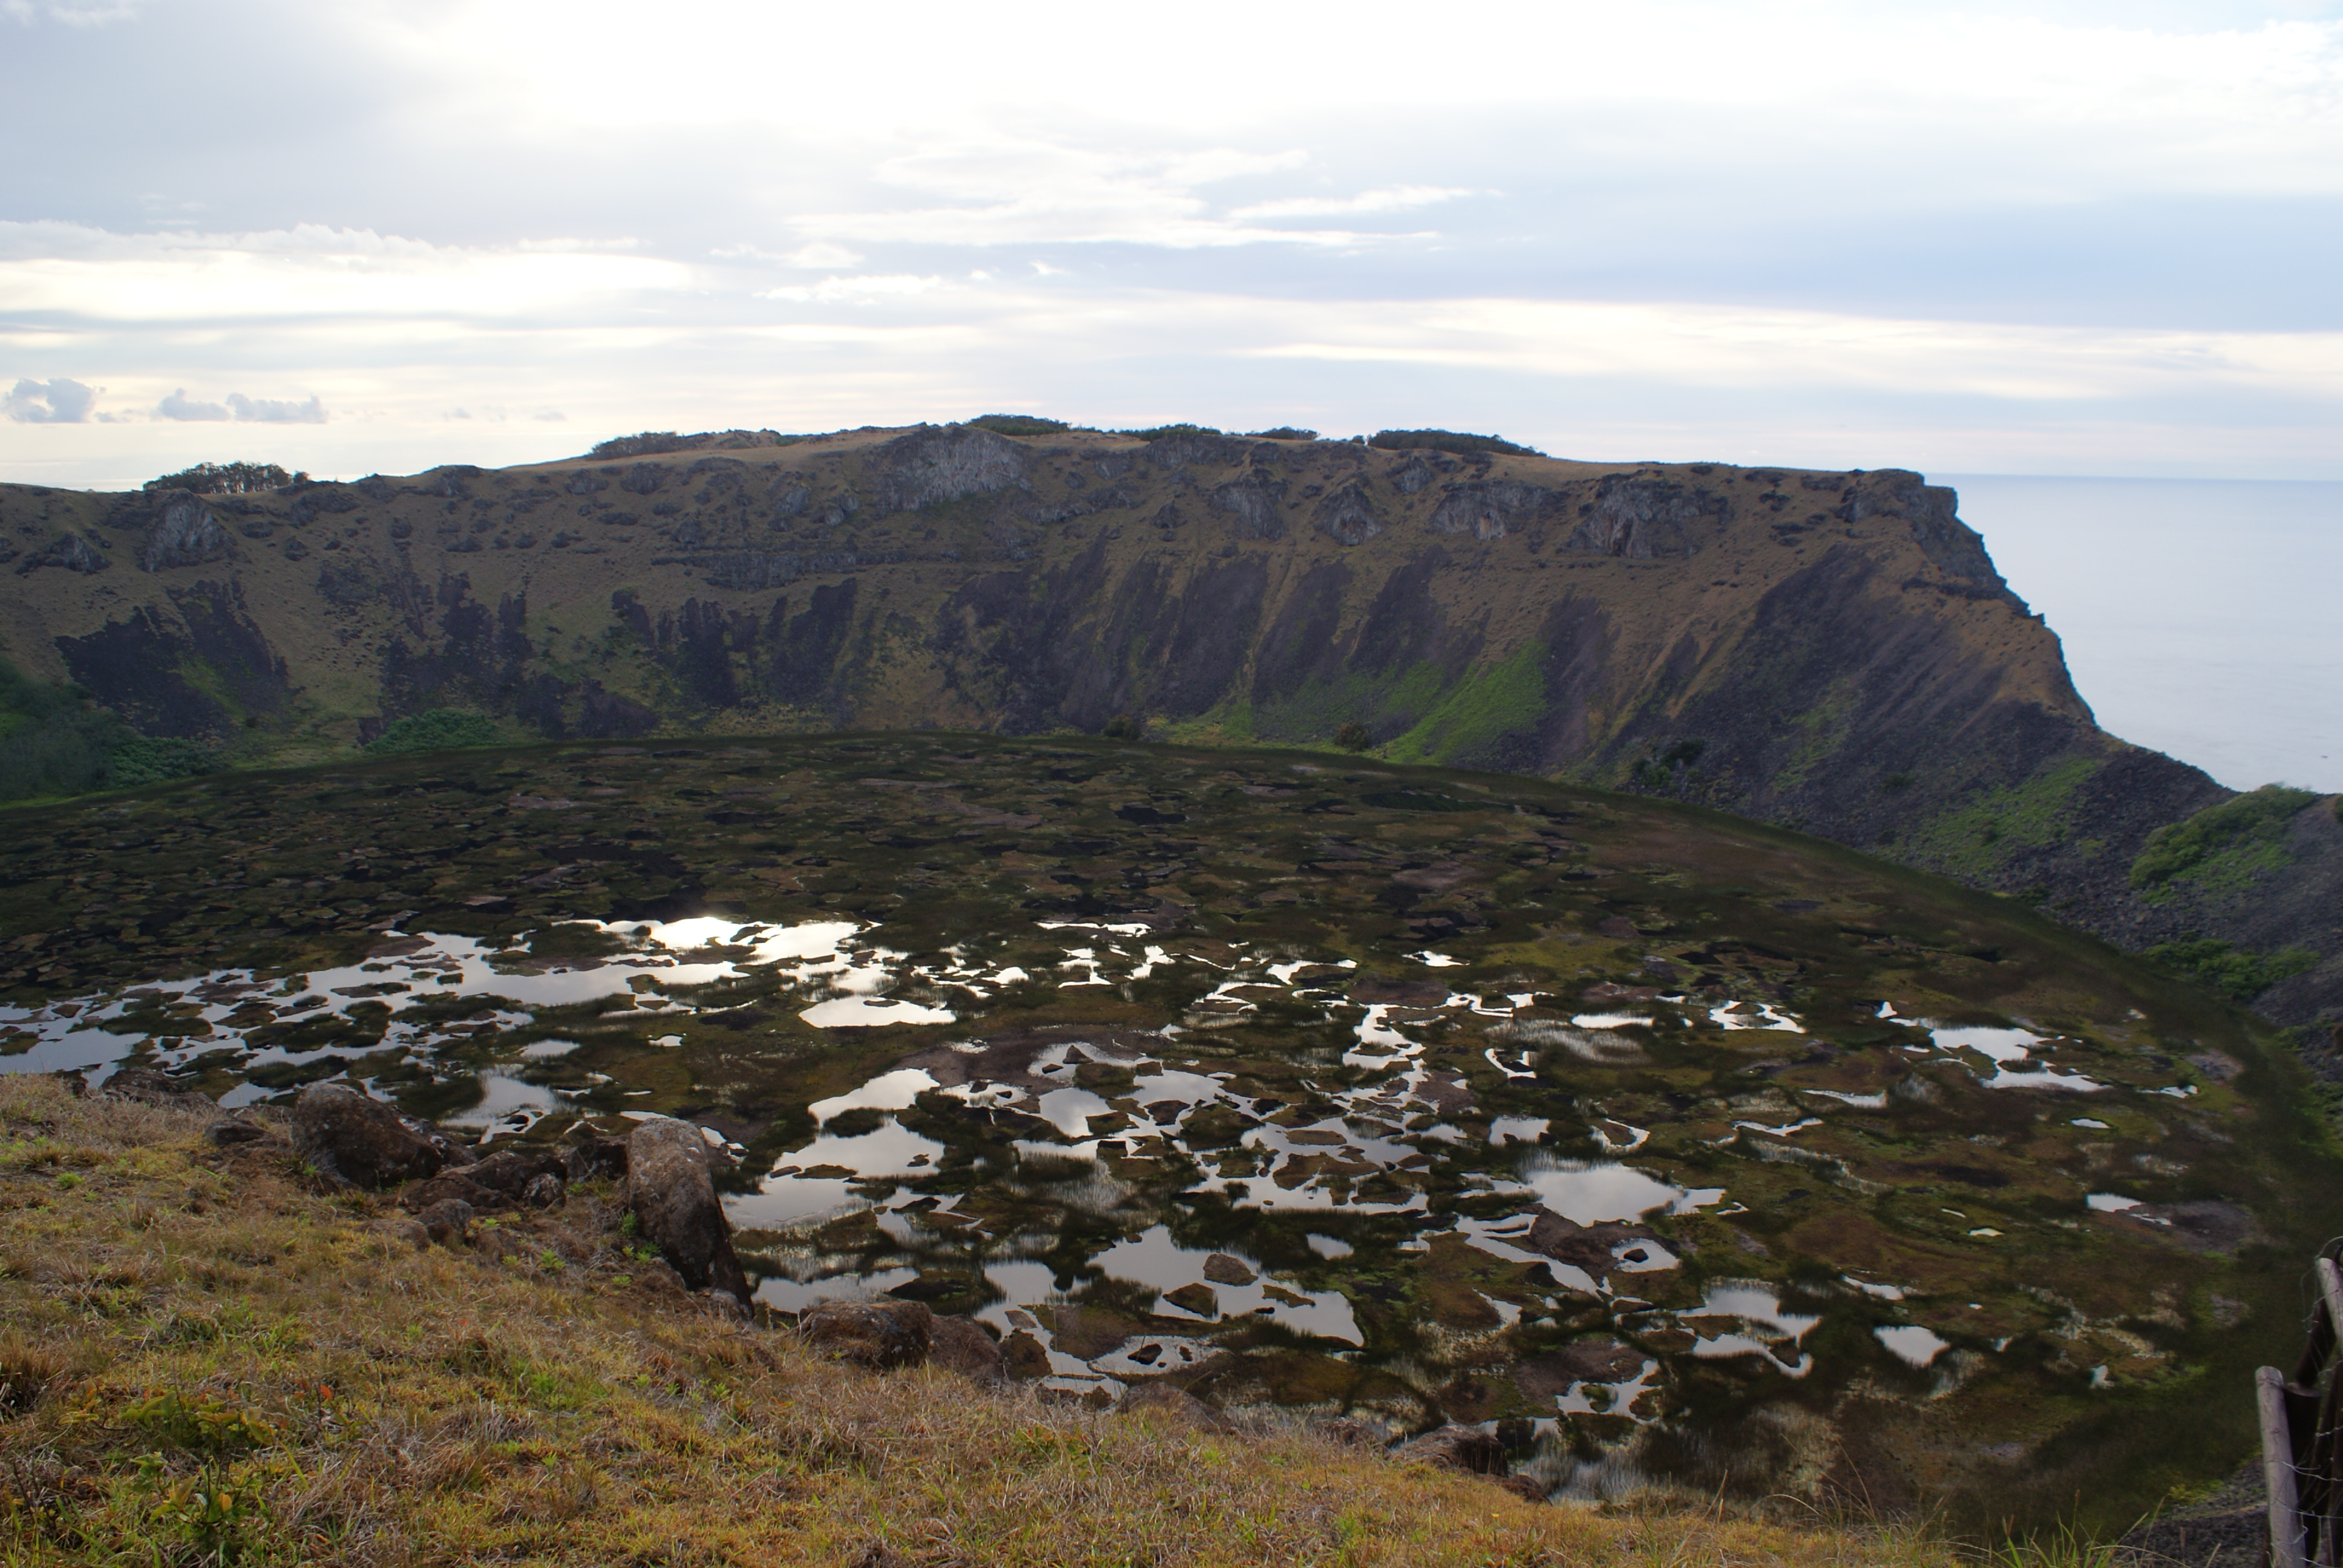 Volcanic crater of Rano Kau